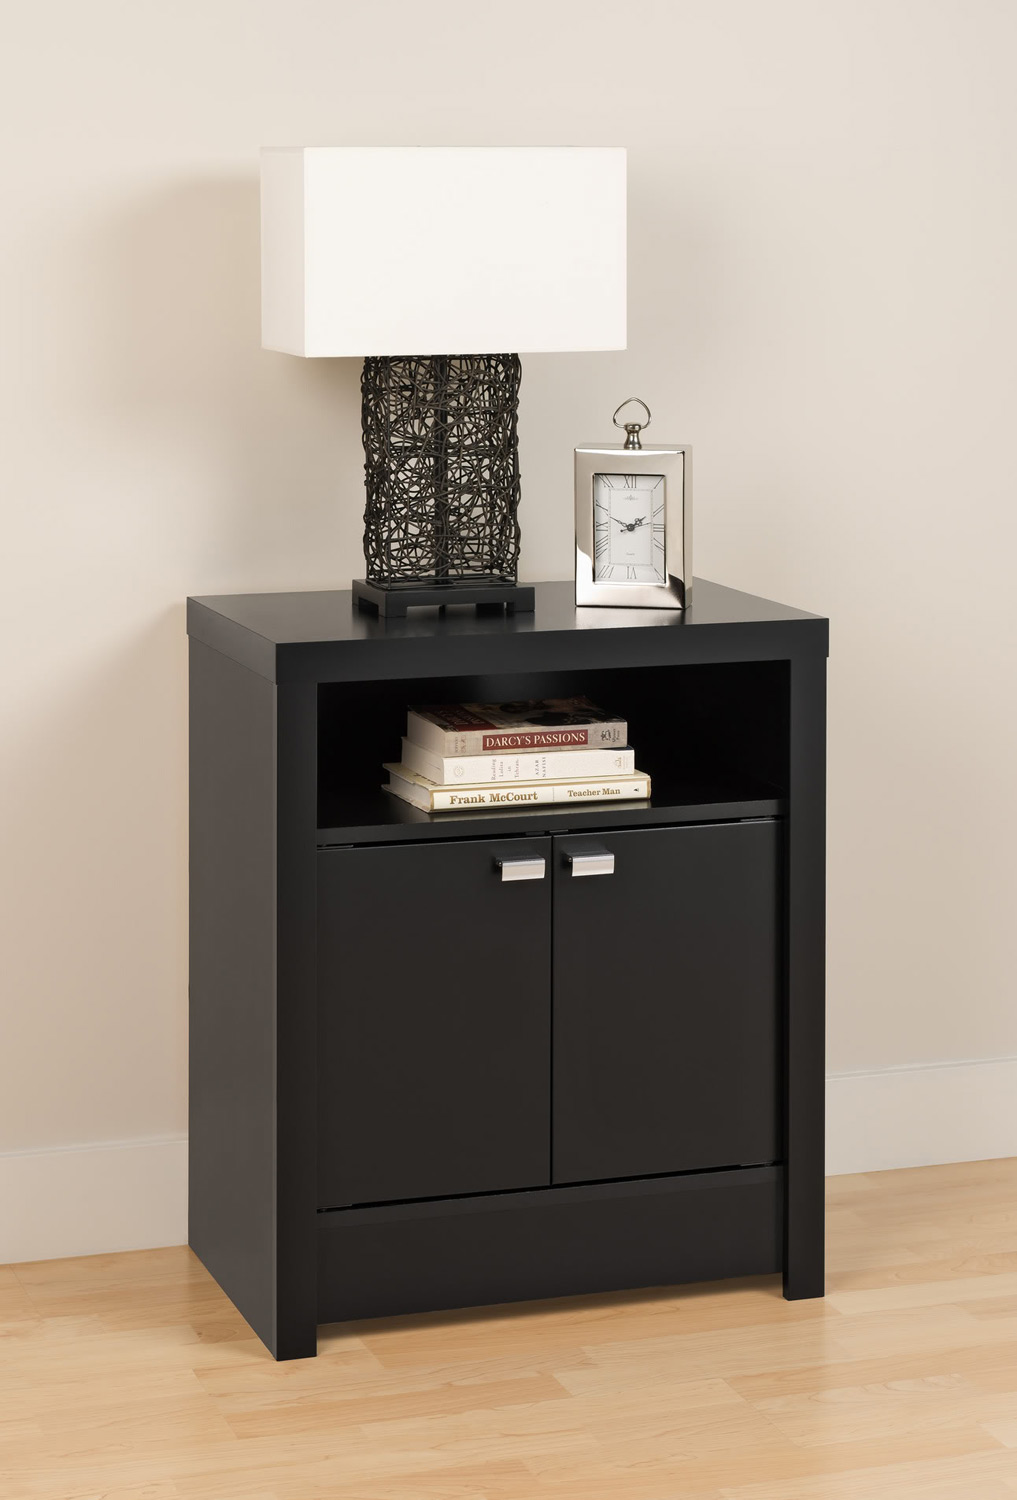 Prepac Series 9 - 2 Door Tall Night Stand - Black